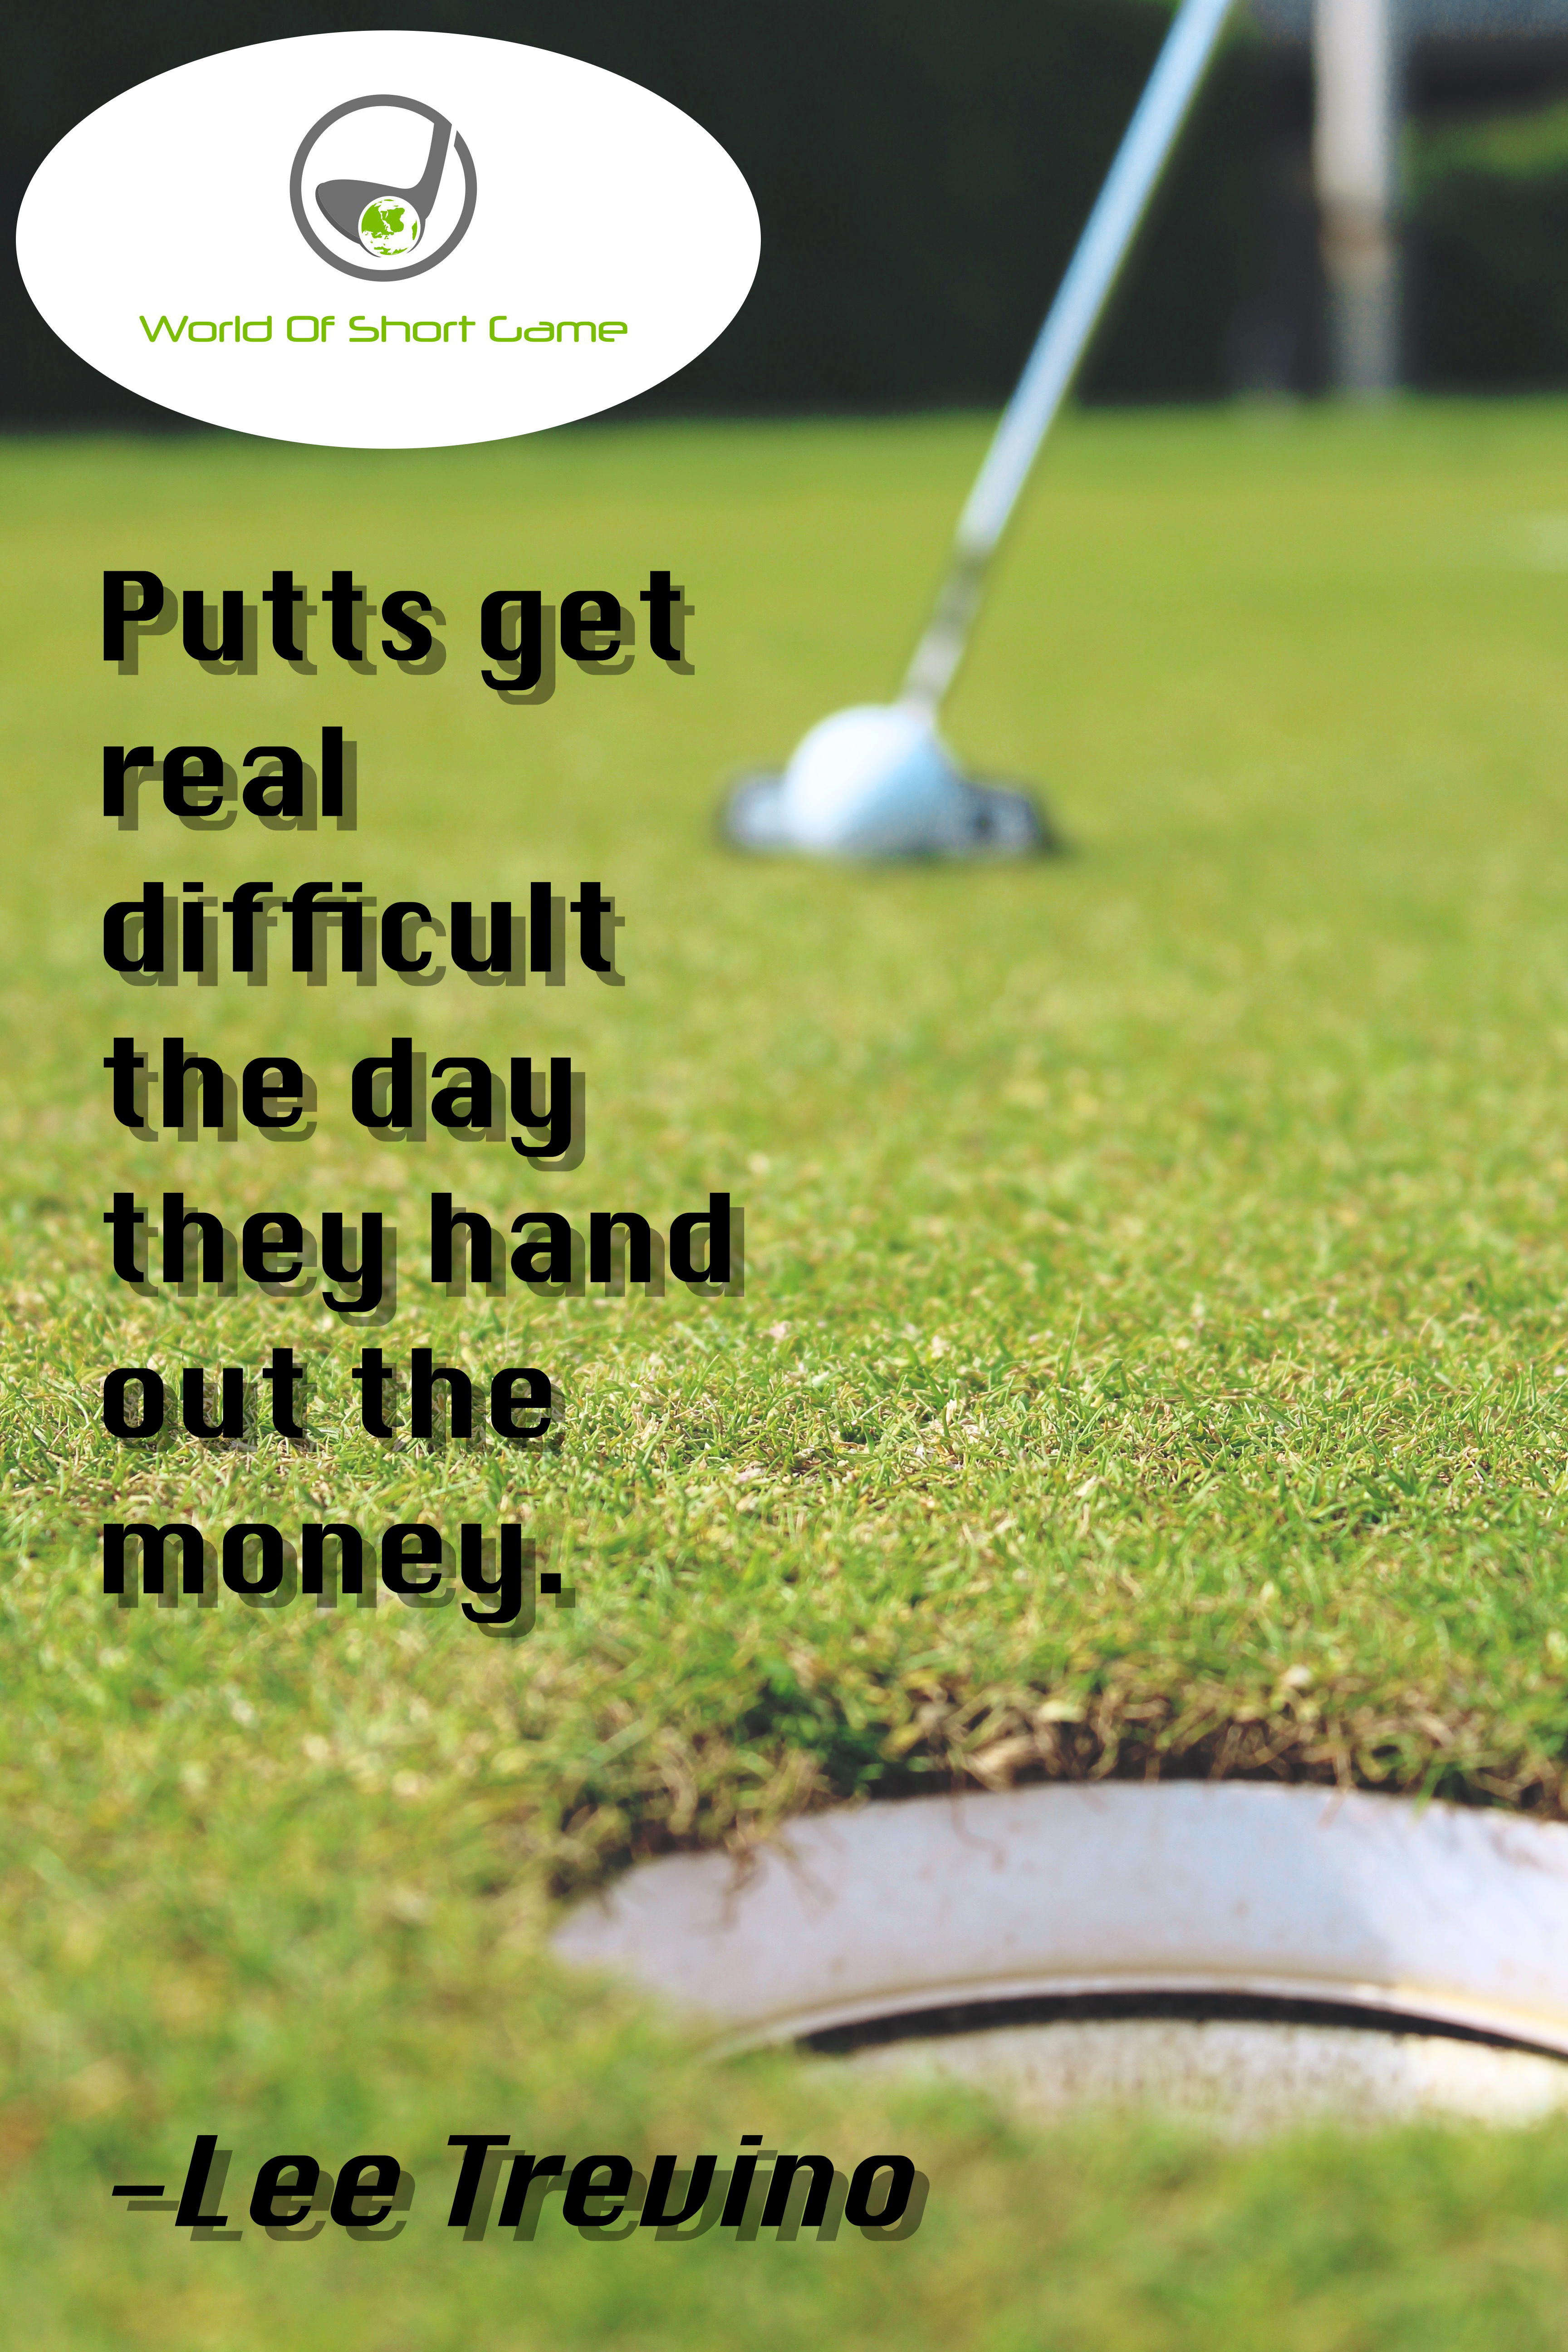 Golf Quotes | Golf Quotes World Of Short Game